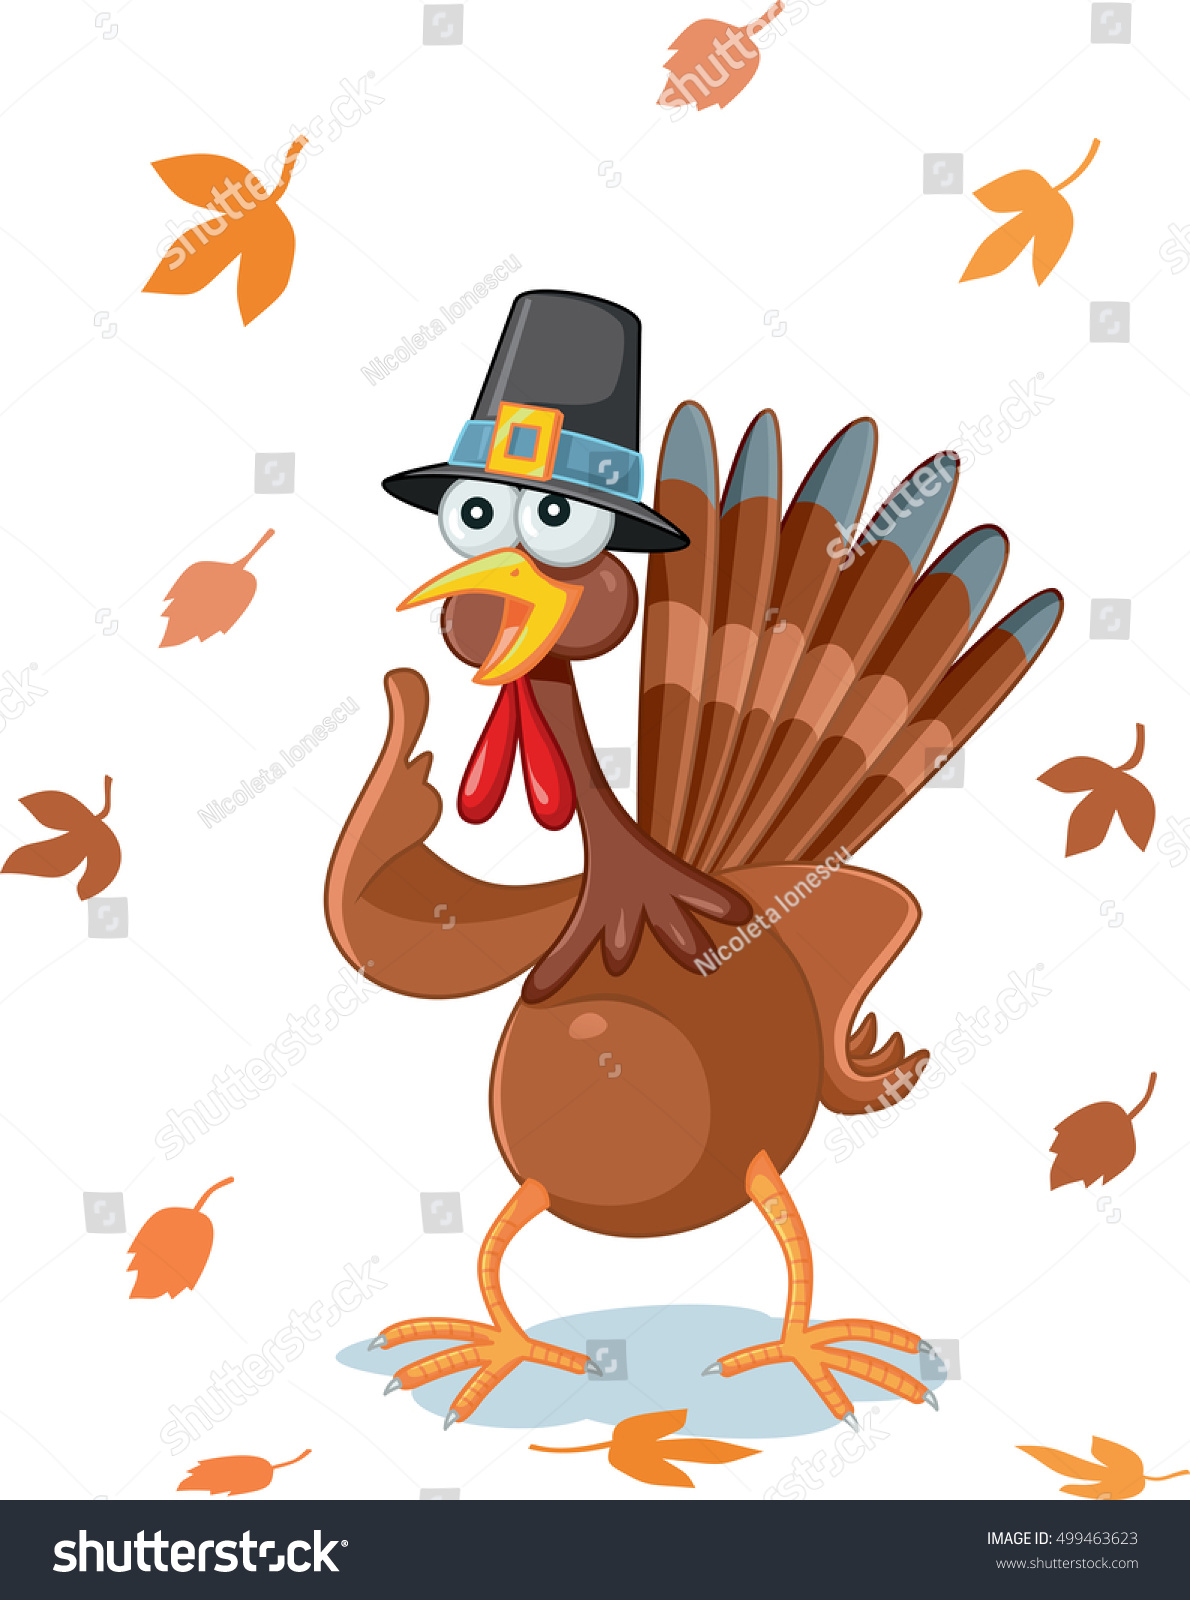 Quotes On Happy Thanksgiving >> Online Image & Photo Editor - Shutterstock Editor